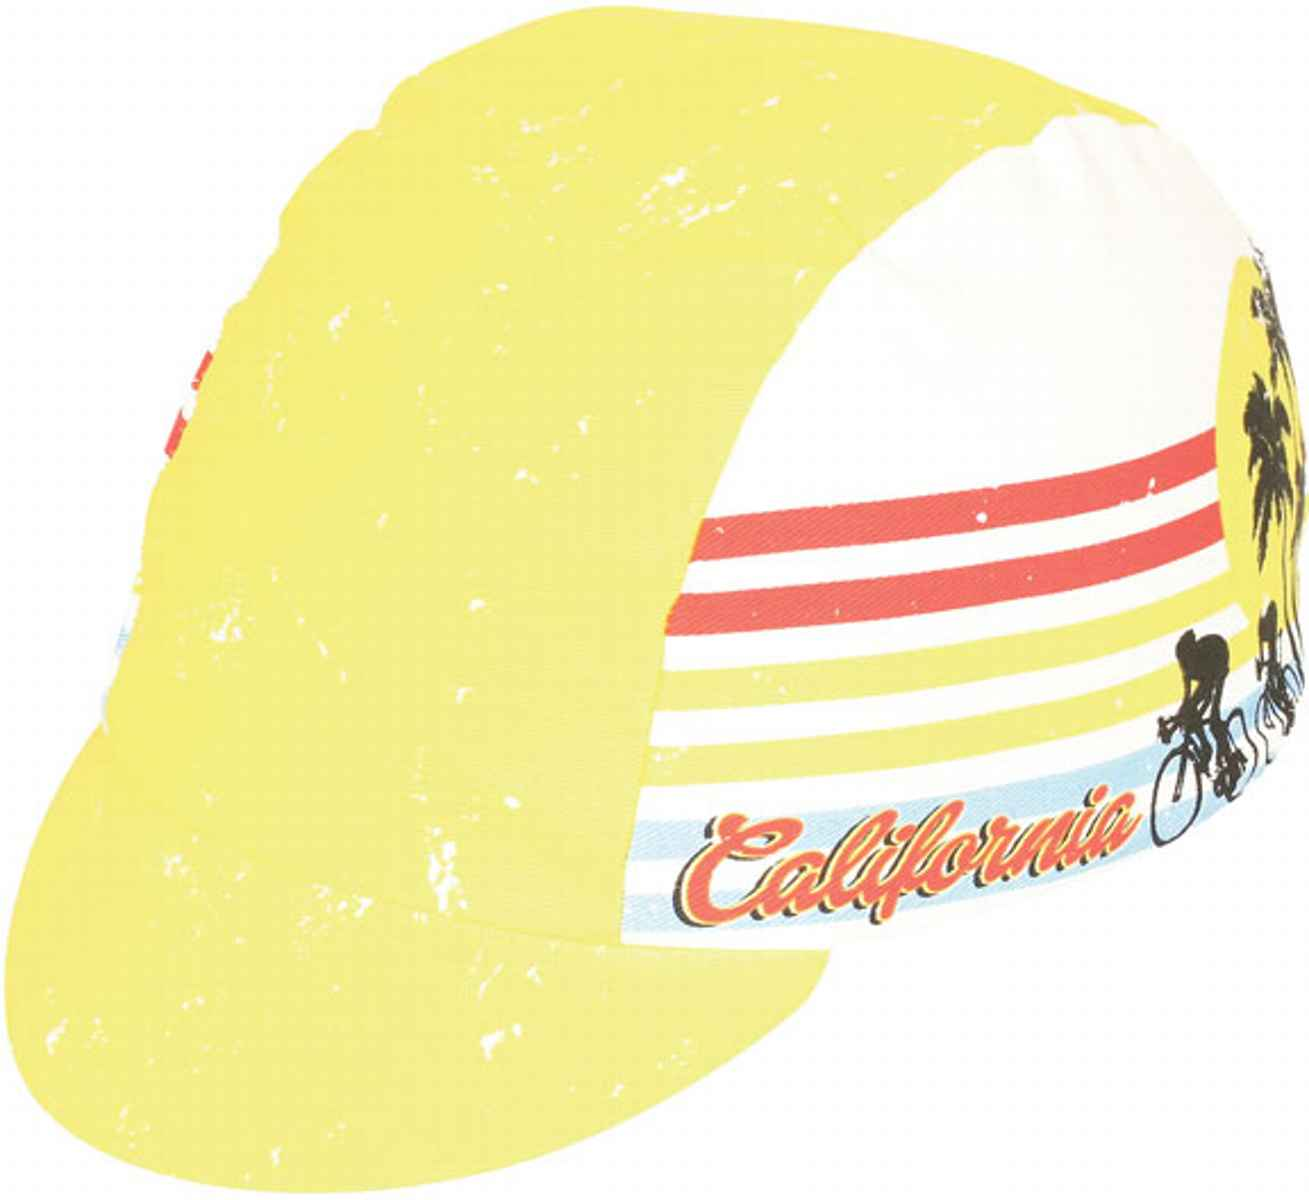 Pace Sportswear Cali Dreamin, Yellow - One Size - 15-0625